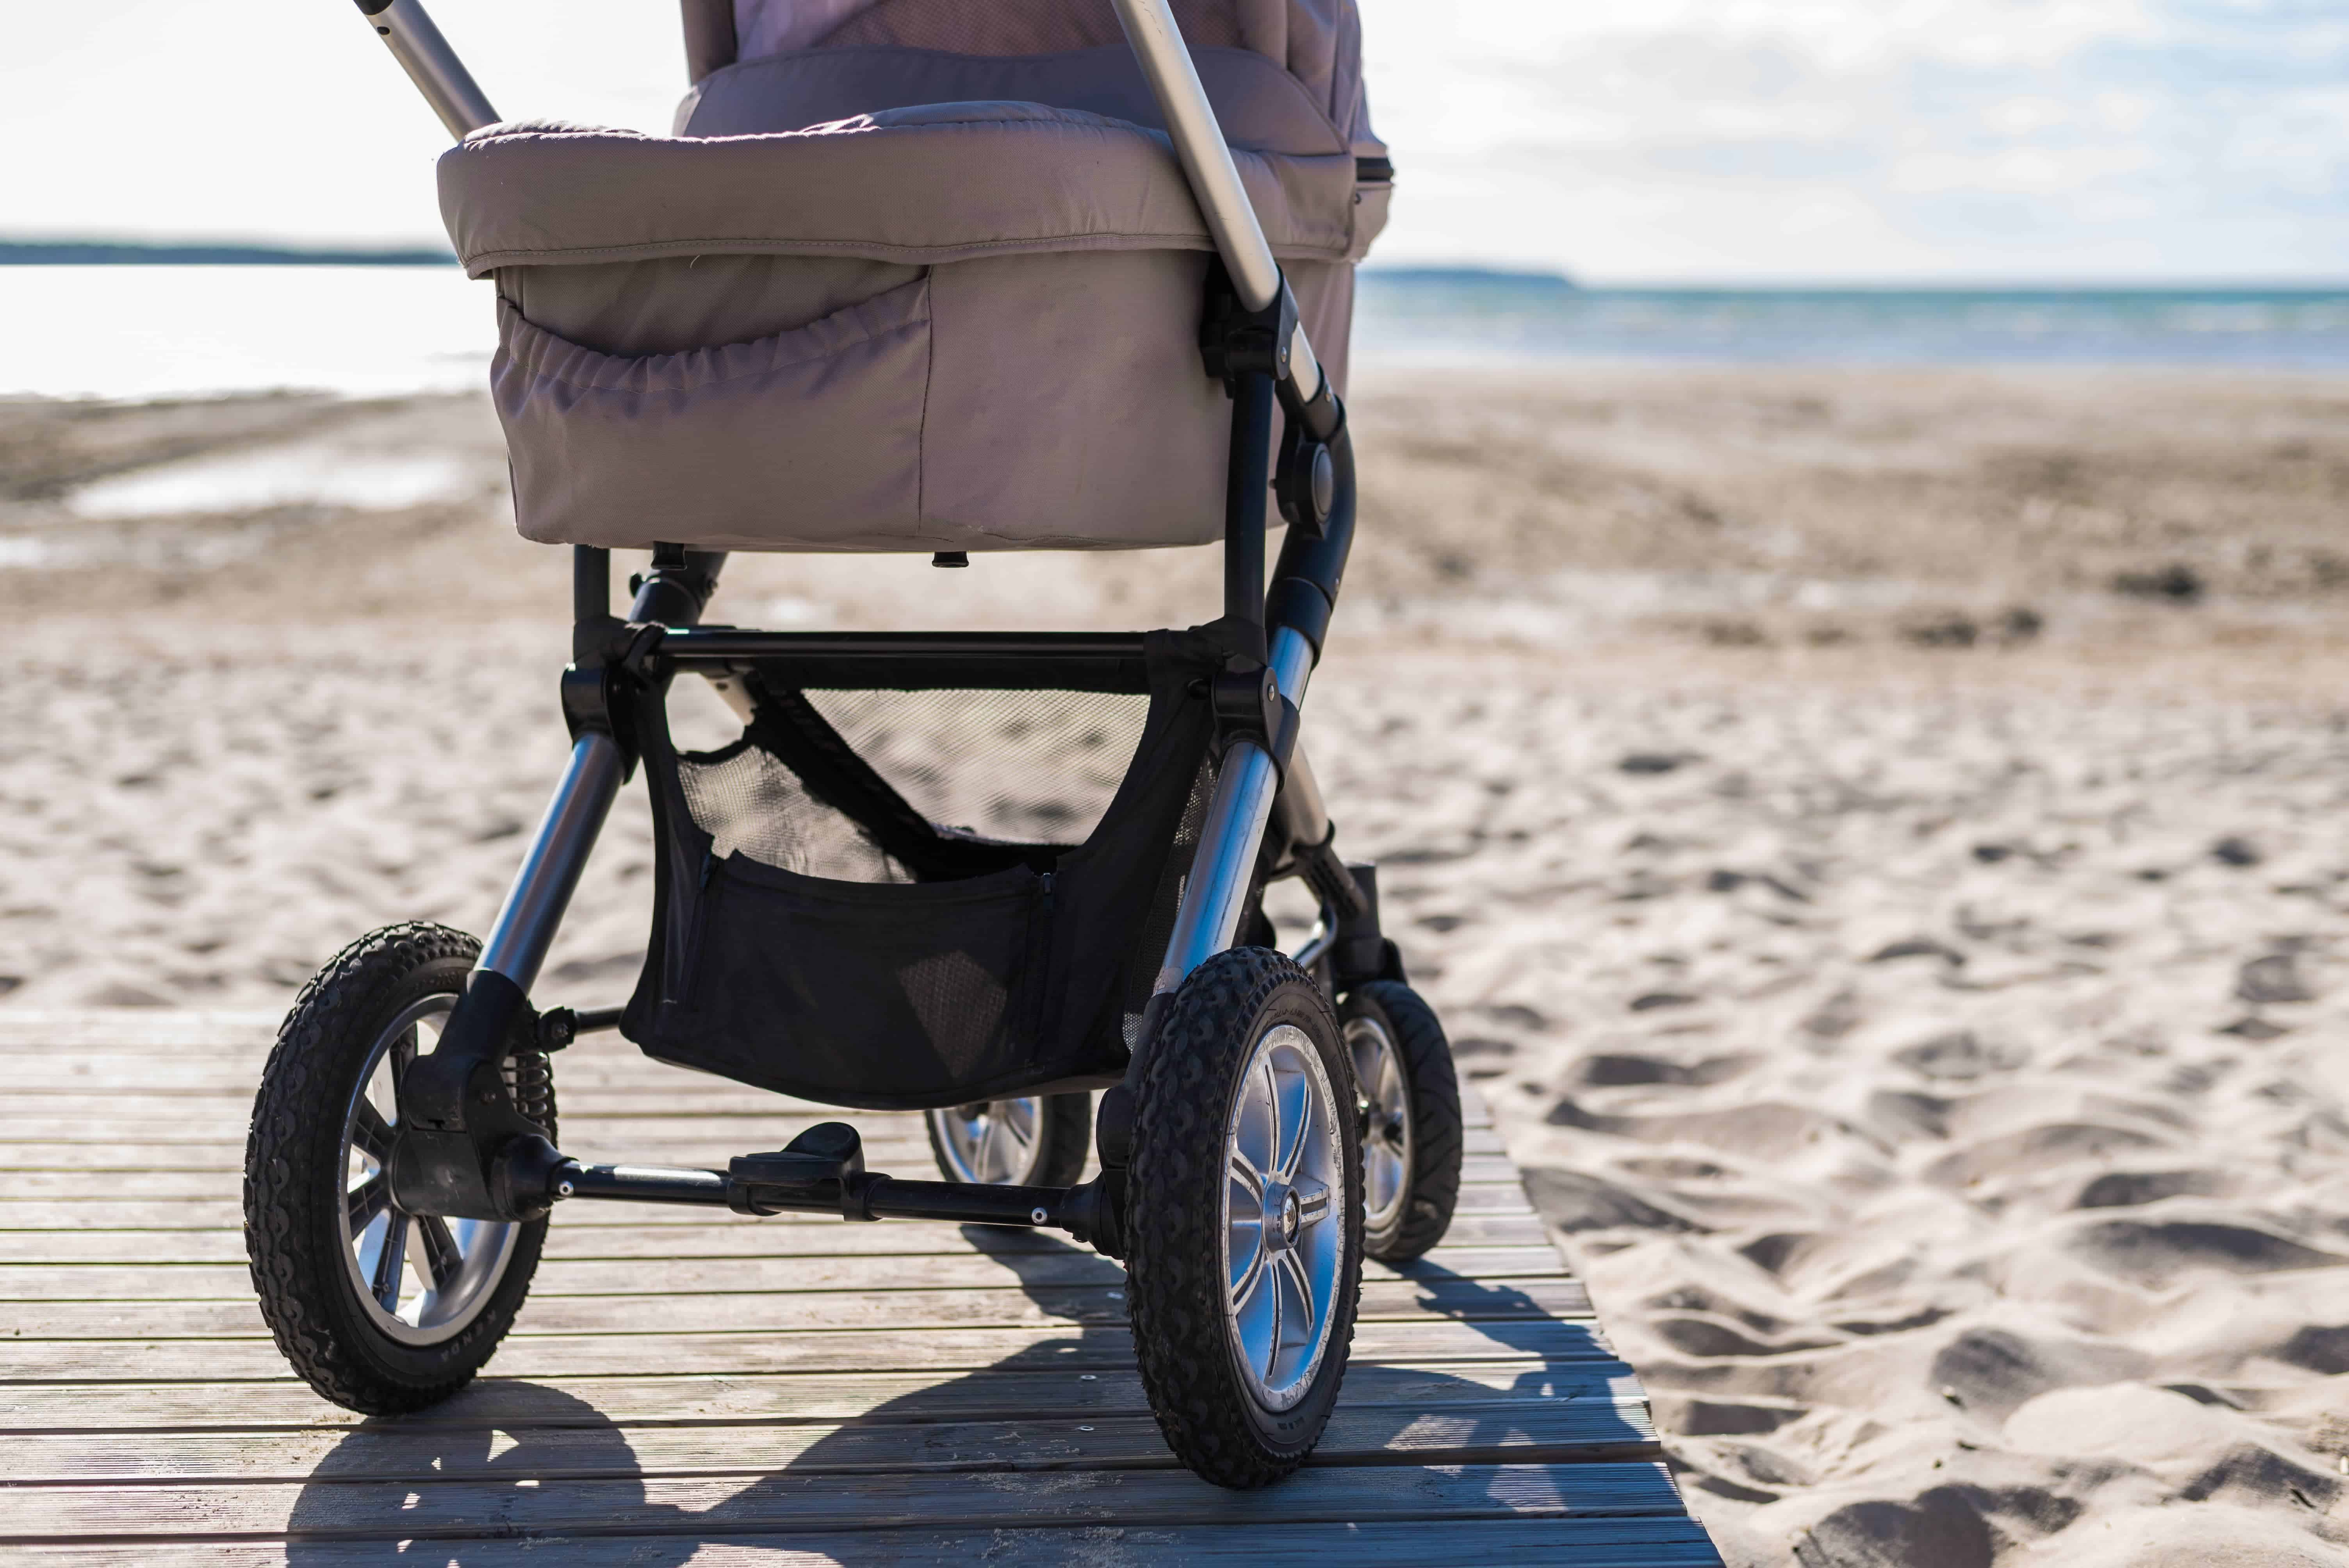 Yoyo Baby Stroller Usa The Best Non Toxic Strollers For 2019